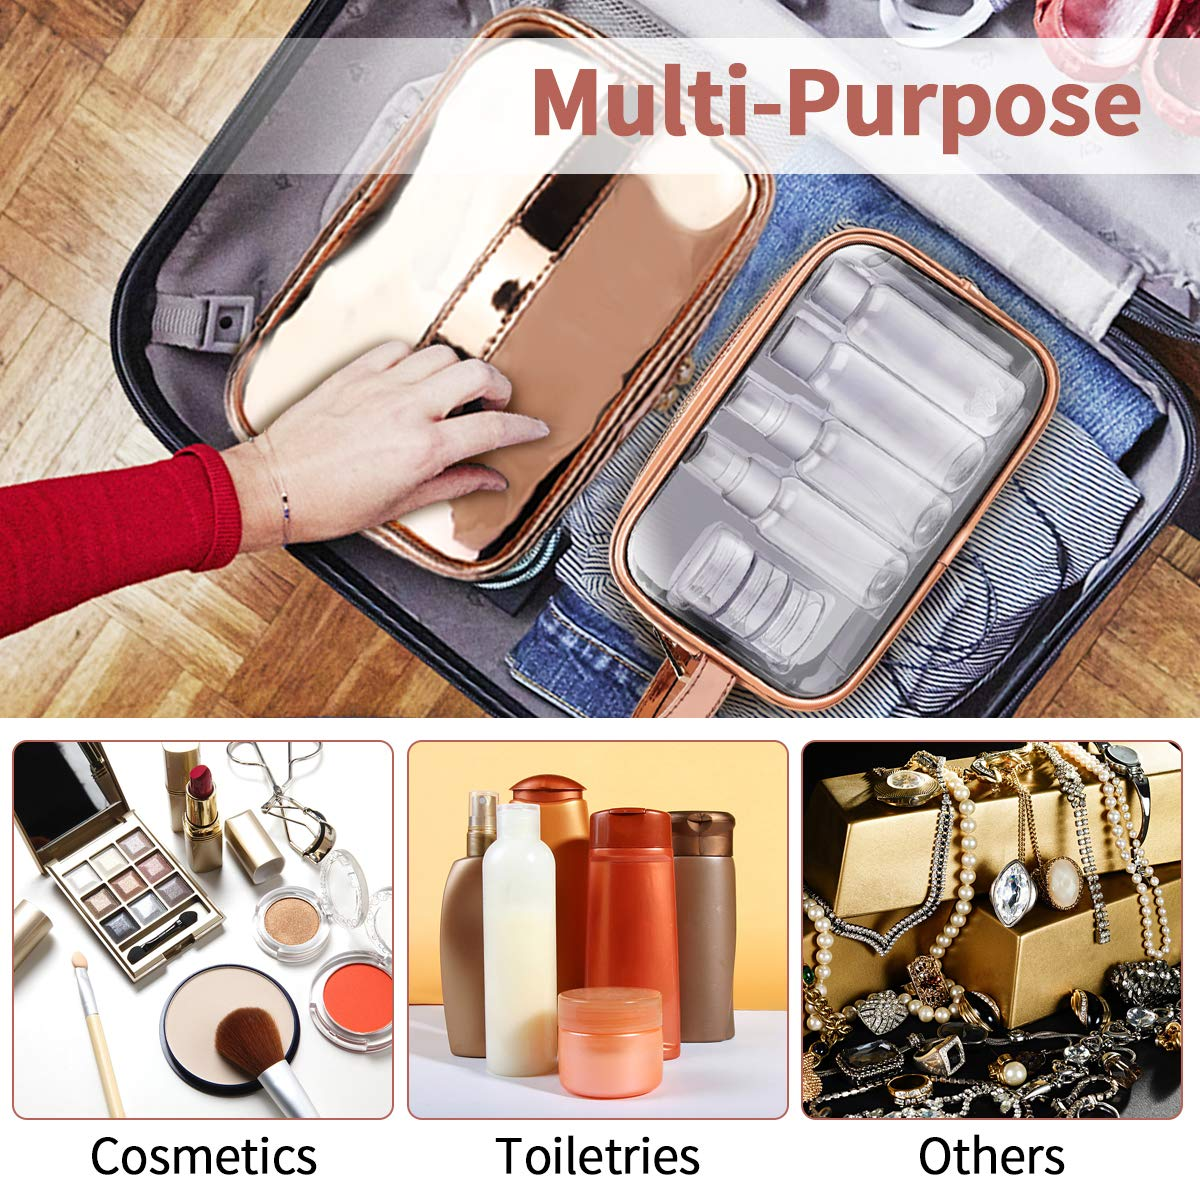 Cosmetic Bag & Clear Toiletry Bag Set, Morpilot Fashionable Portable Women Makeup Cosmetic Travel Bags with TSA Approved Toiletry Travel Bag Organizer for Packing Cosmetic Makeup Toiletry Accessories